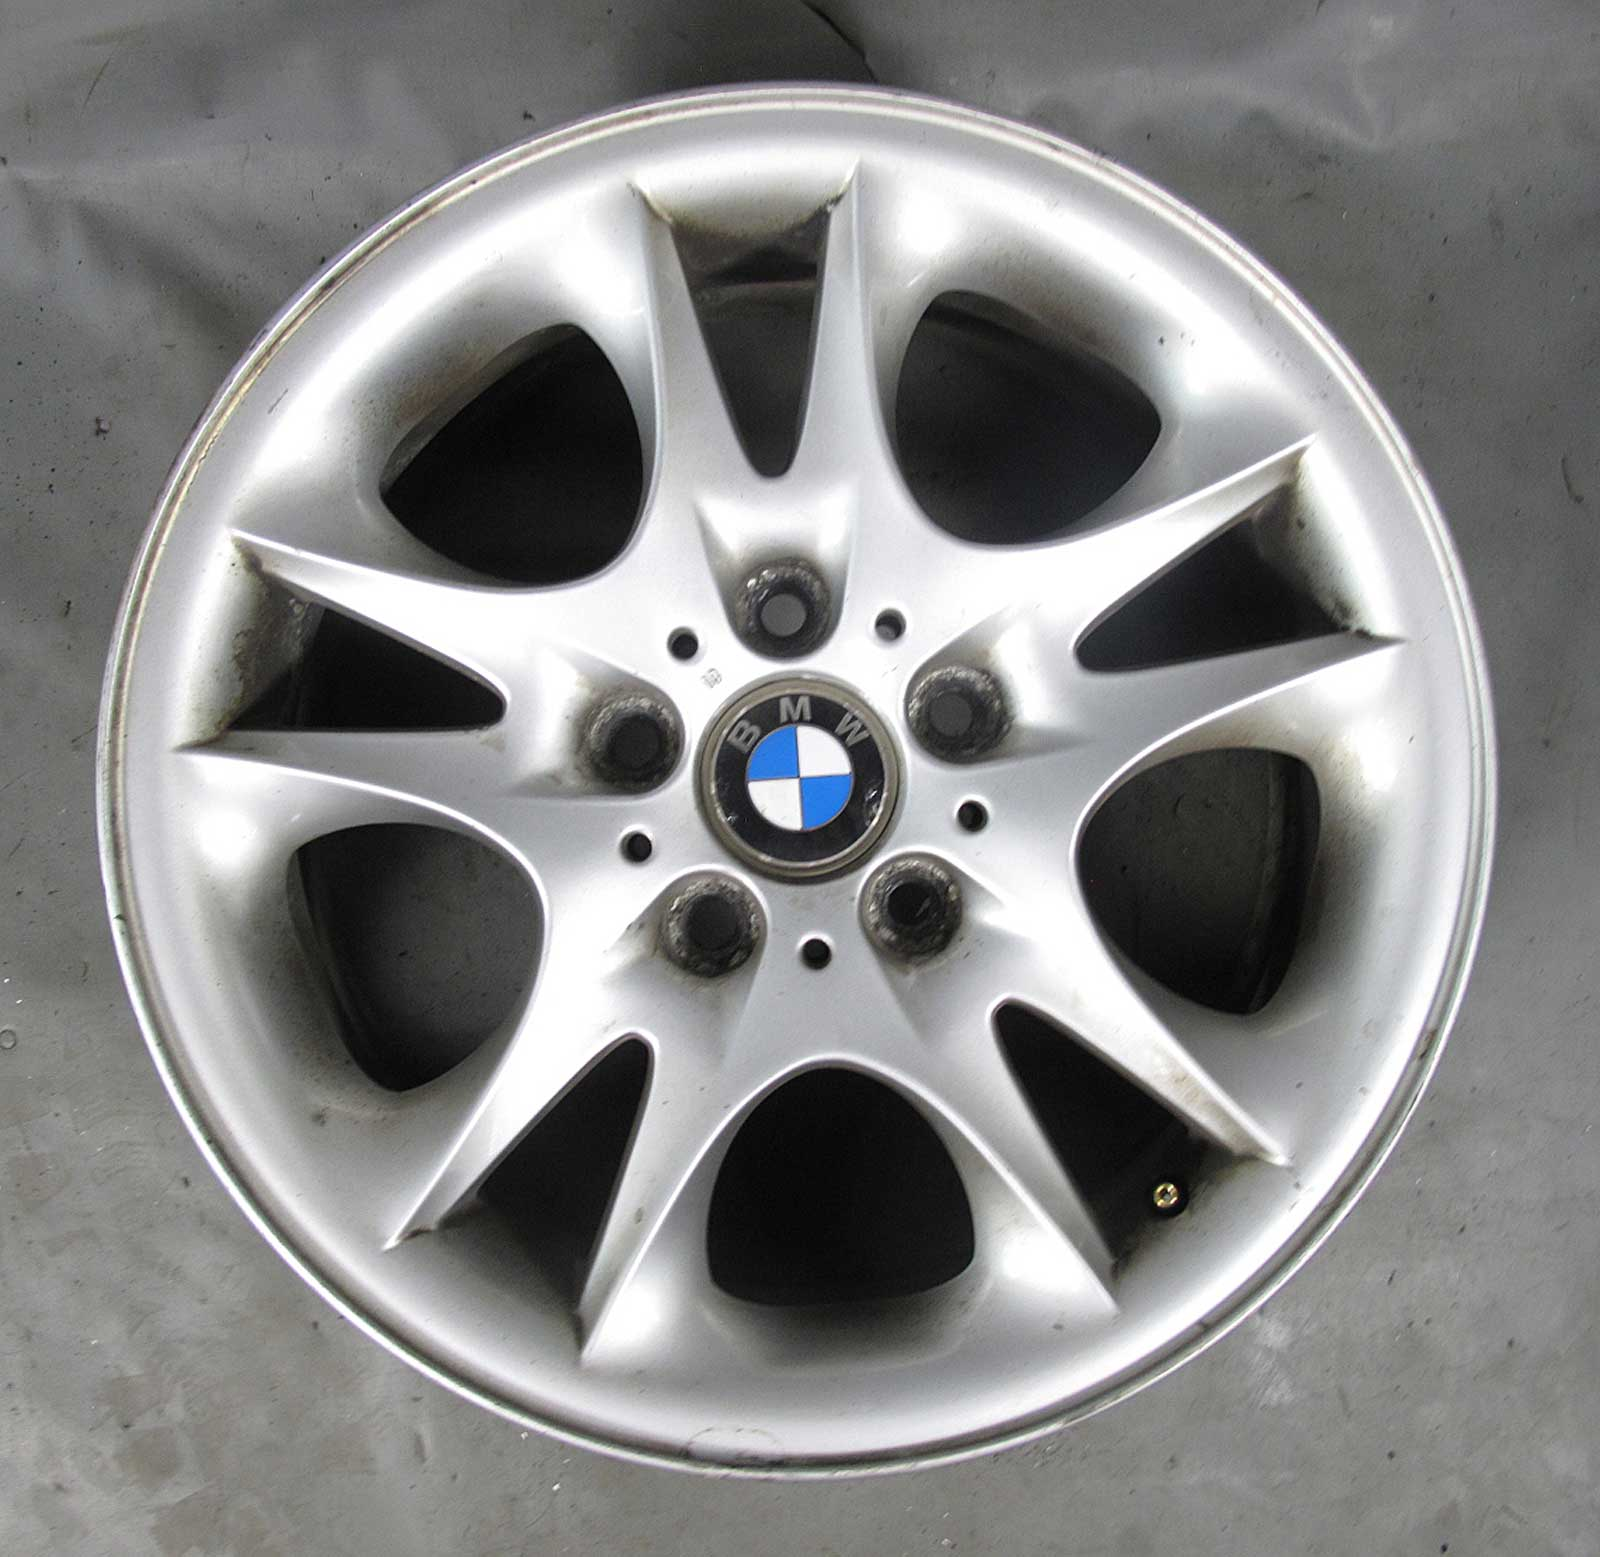 styles genuine id fitment new used style showroom product alloys spoke ad rim only bmw delivery mileage winter info inc p tyres